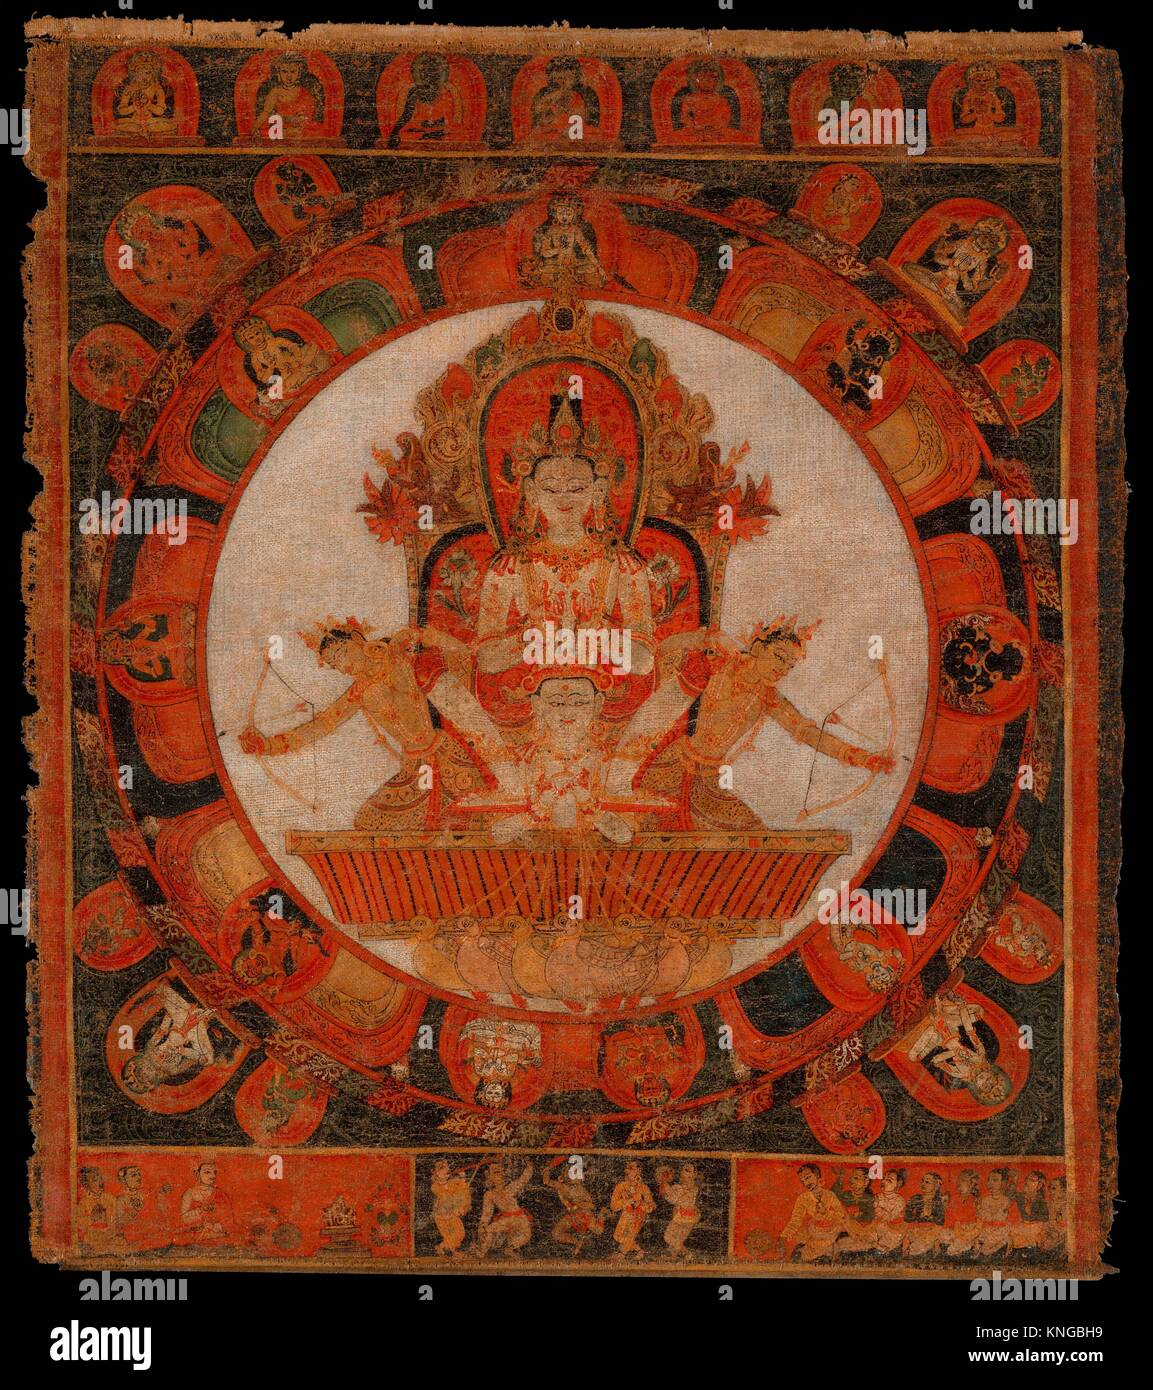 Mandala of Chandra, God of the Moon. Period: early Malla period; Date: late 14th-early 15th century; Culture: Nepal - Stock Image